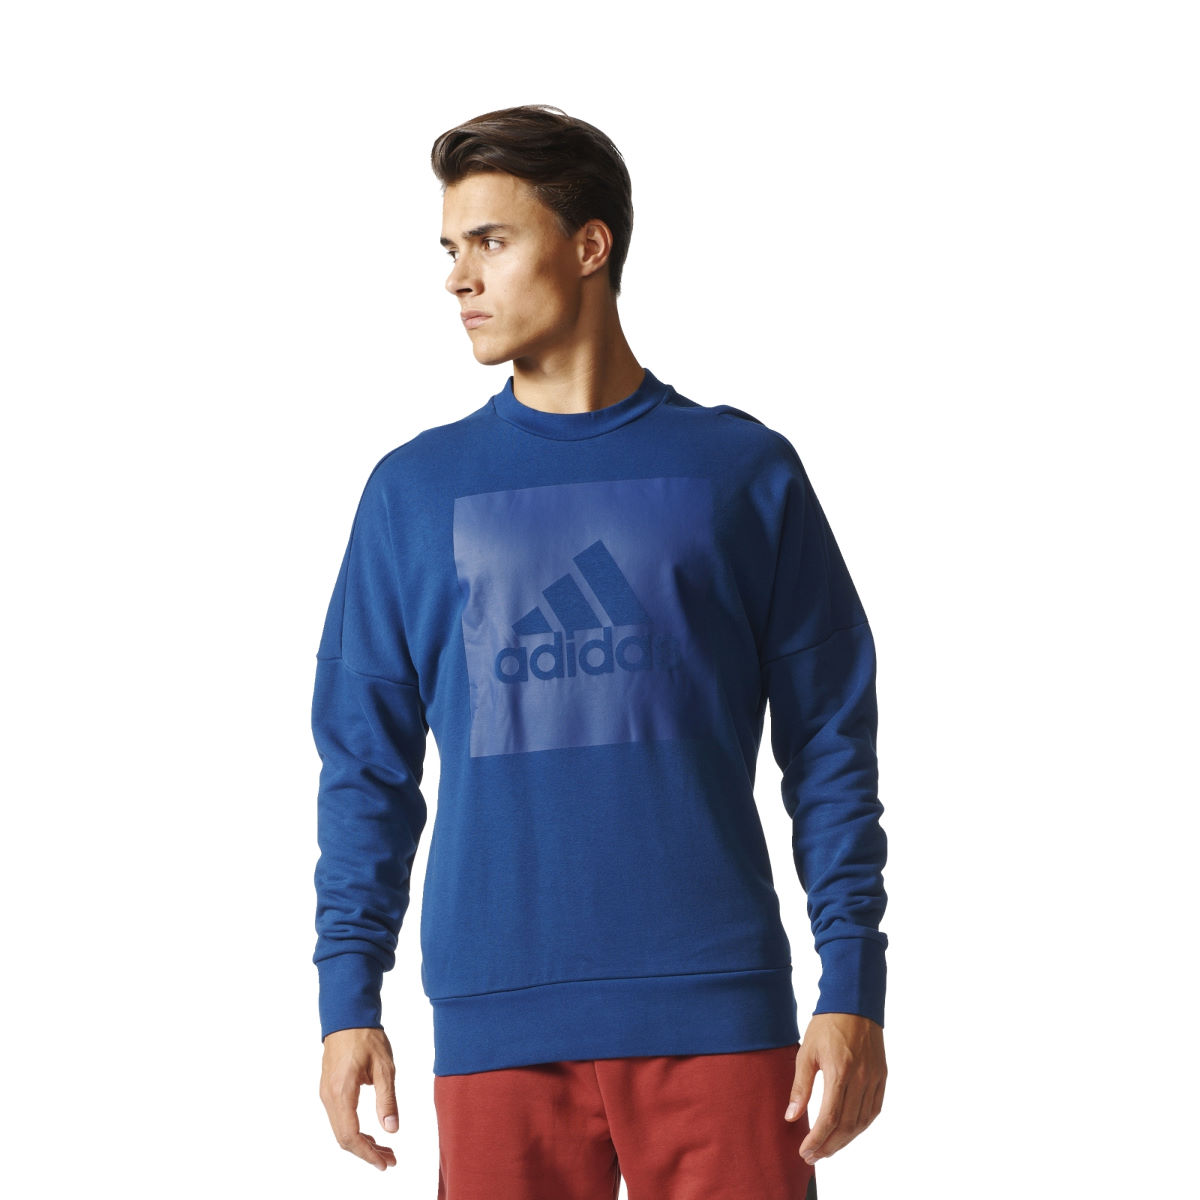 Maillot Adidas SID Branded (col rond, PE17) - S Bleu Hauts de running à manches longues